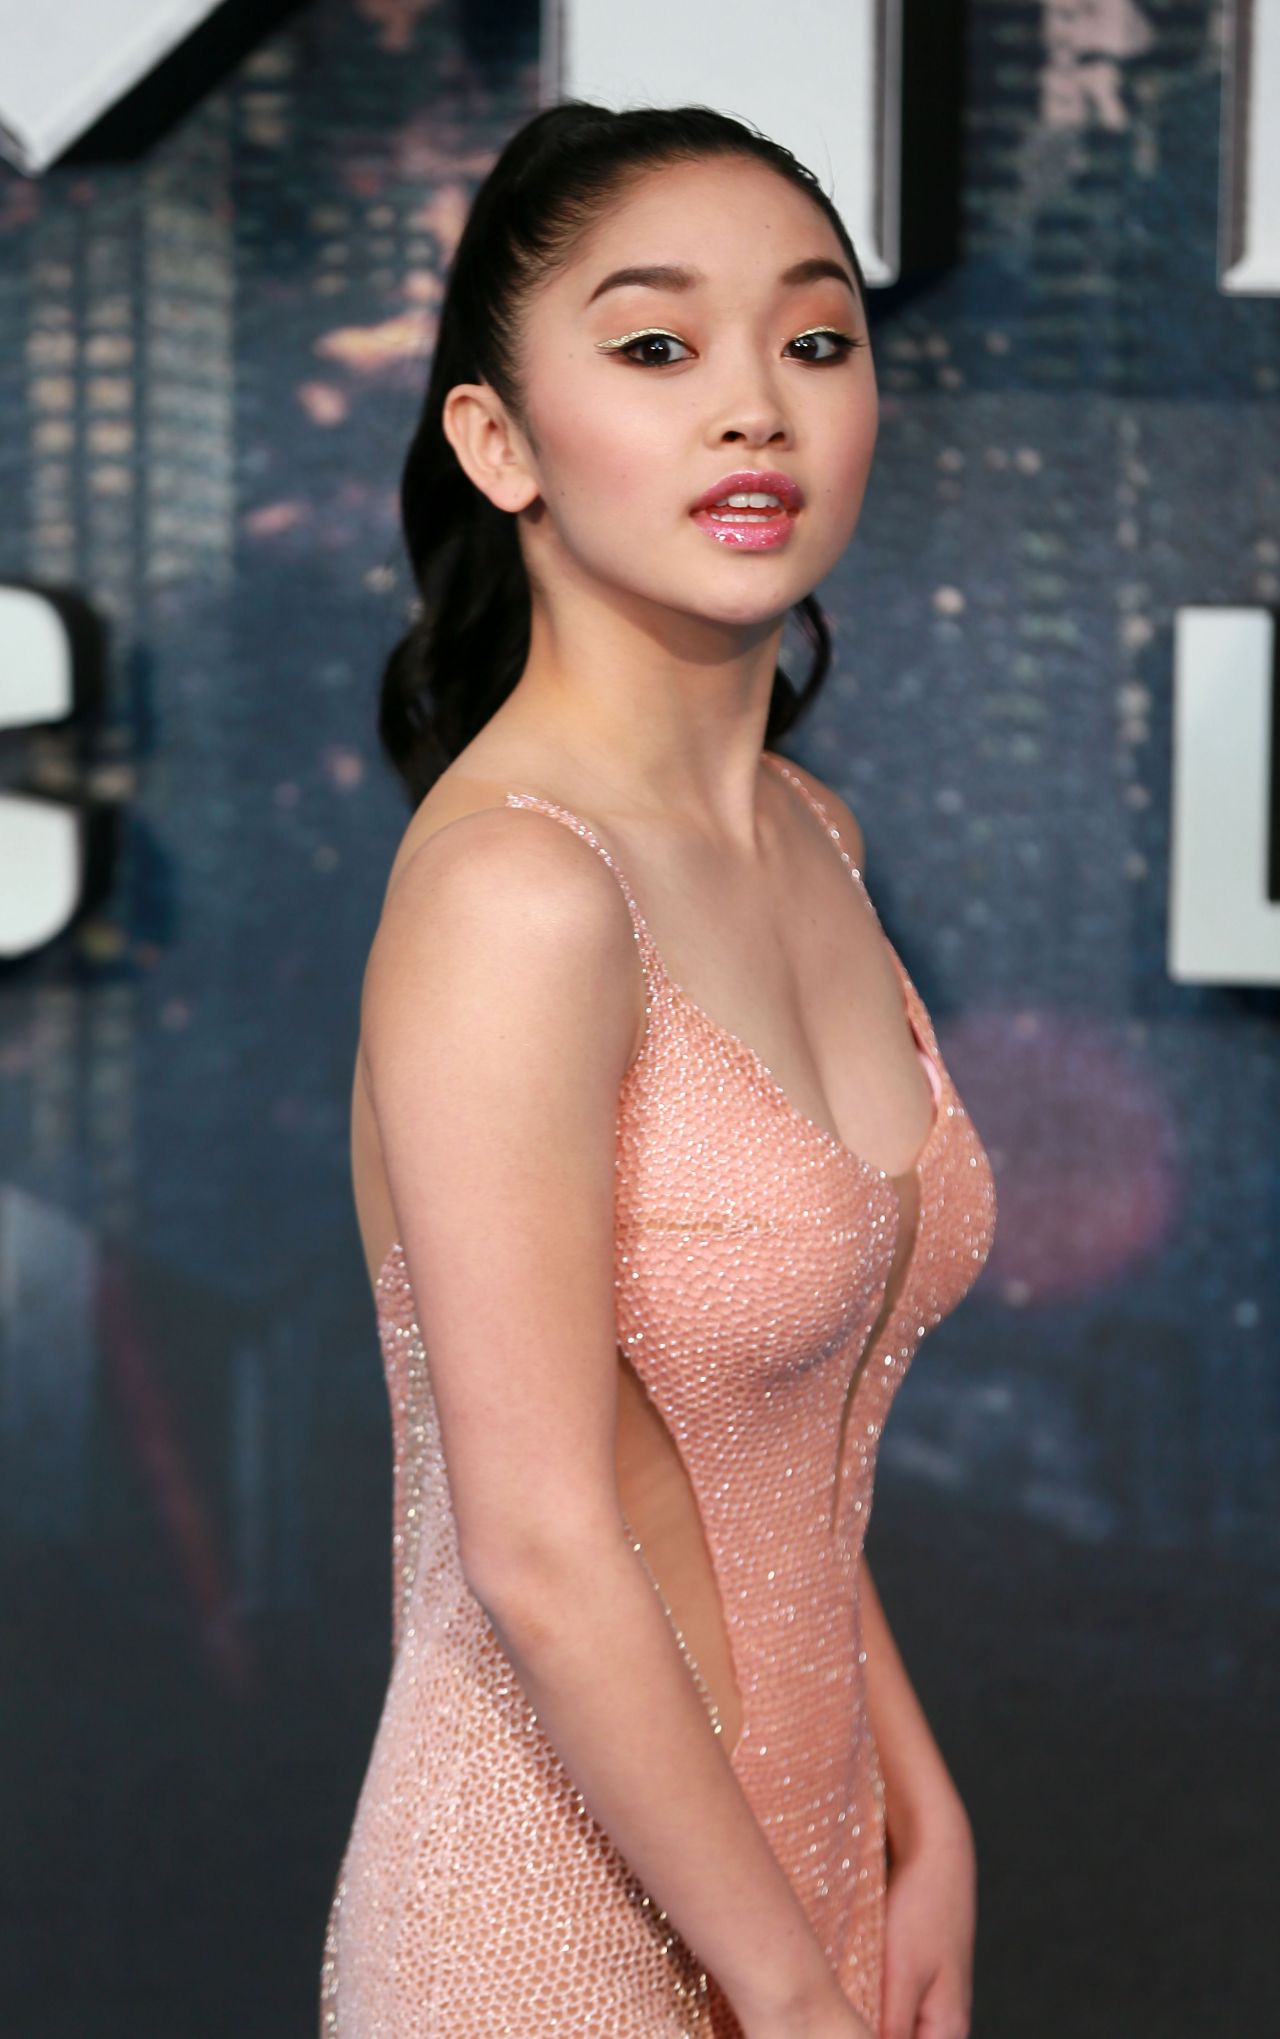 Lana Condor X Men Apocalypse Premiere In London Uk 5 9